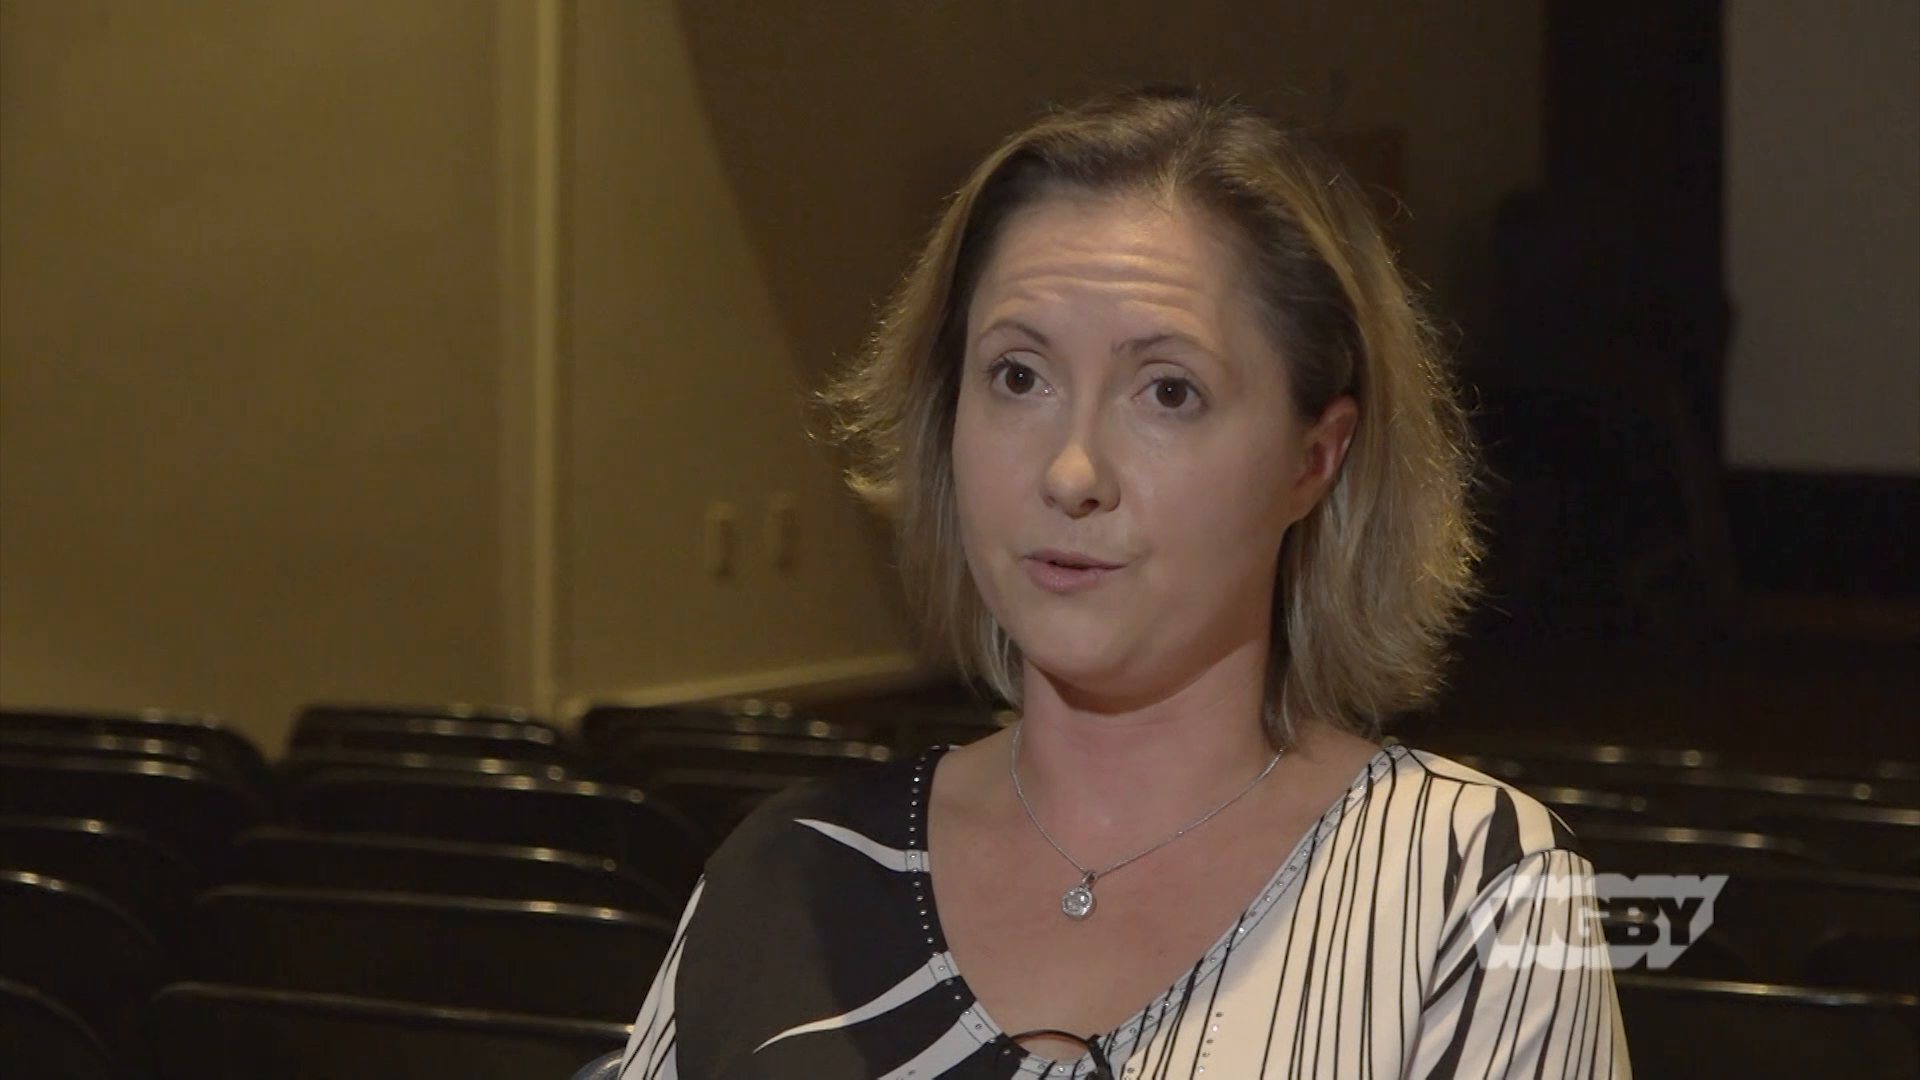 Cold case consultant Dr. Sarah Stein discusses her career and the high-profile western Mass cold cases she's consulted on.